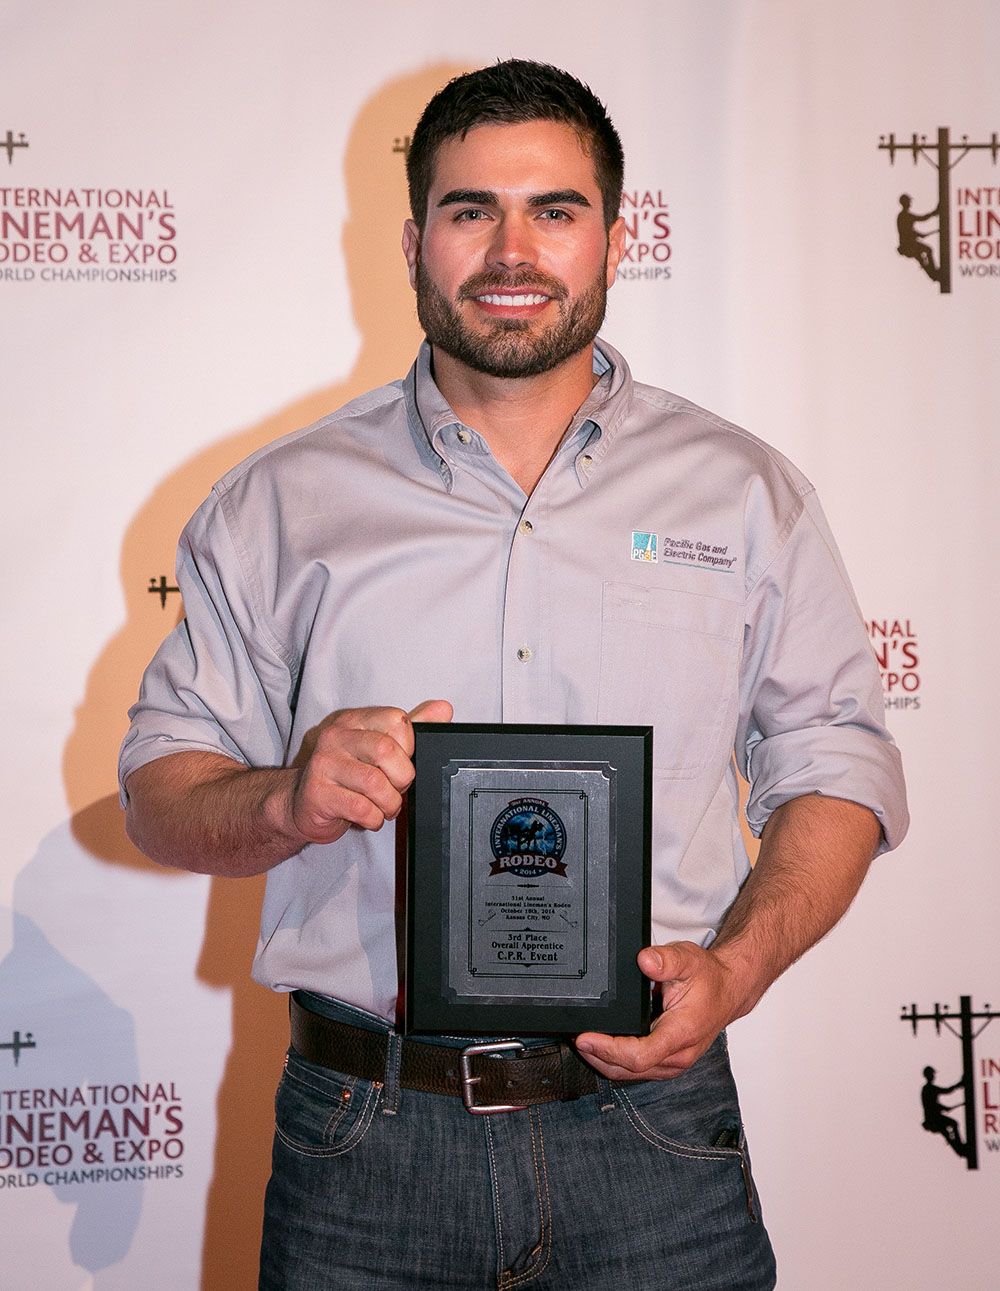 Mike Moreno came in 3rd place in Apprentice Hurtman Rescue and Apprentice CPR events